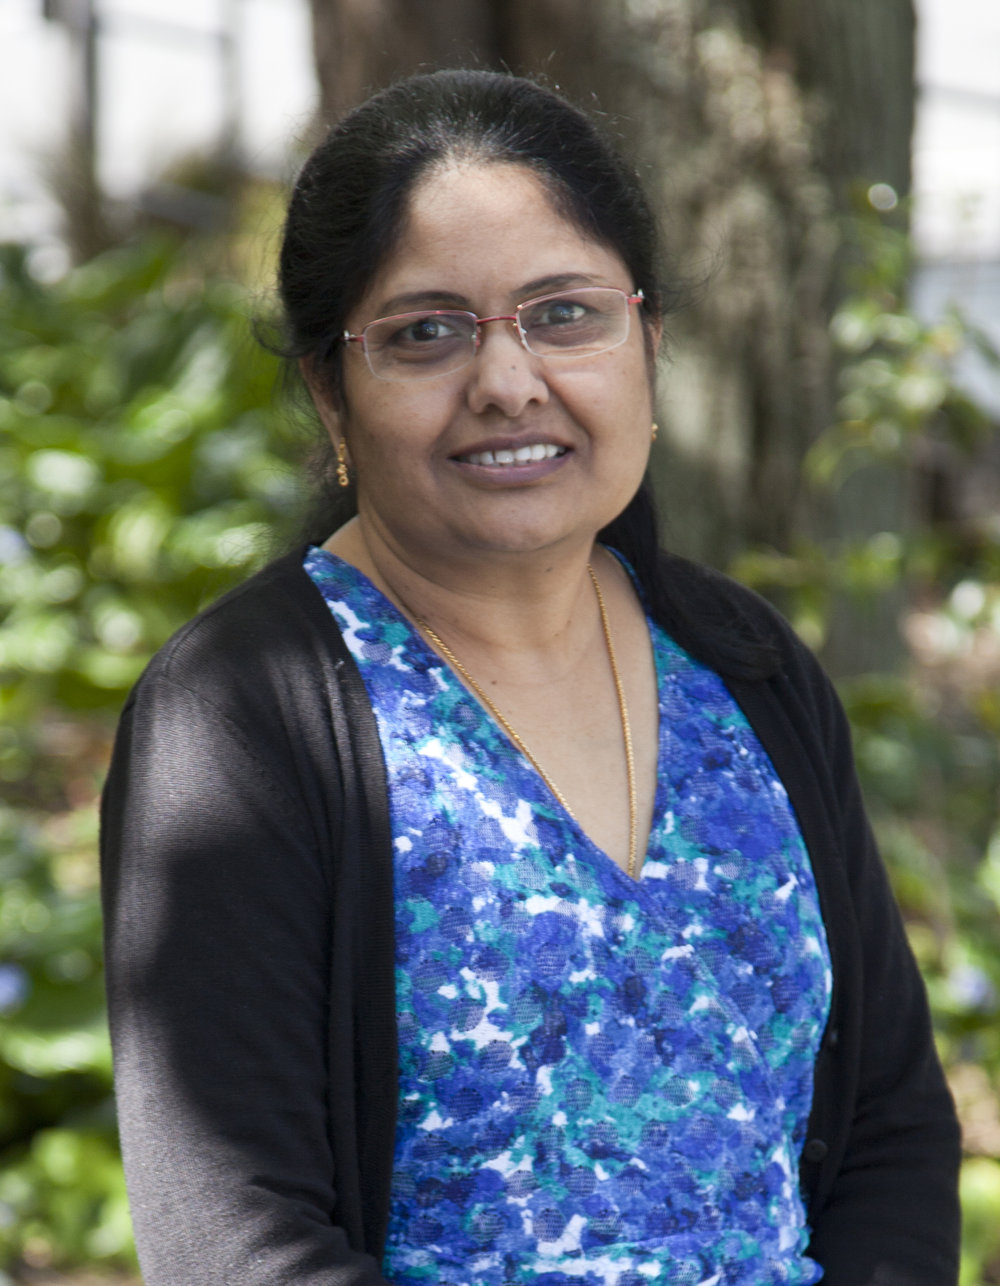 Lakshmi Budaraju, Data Information Officer lakshmi@biogro.co.nz